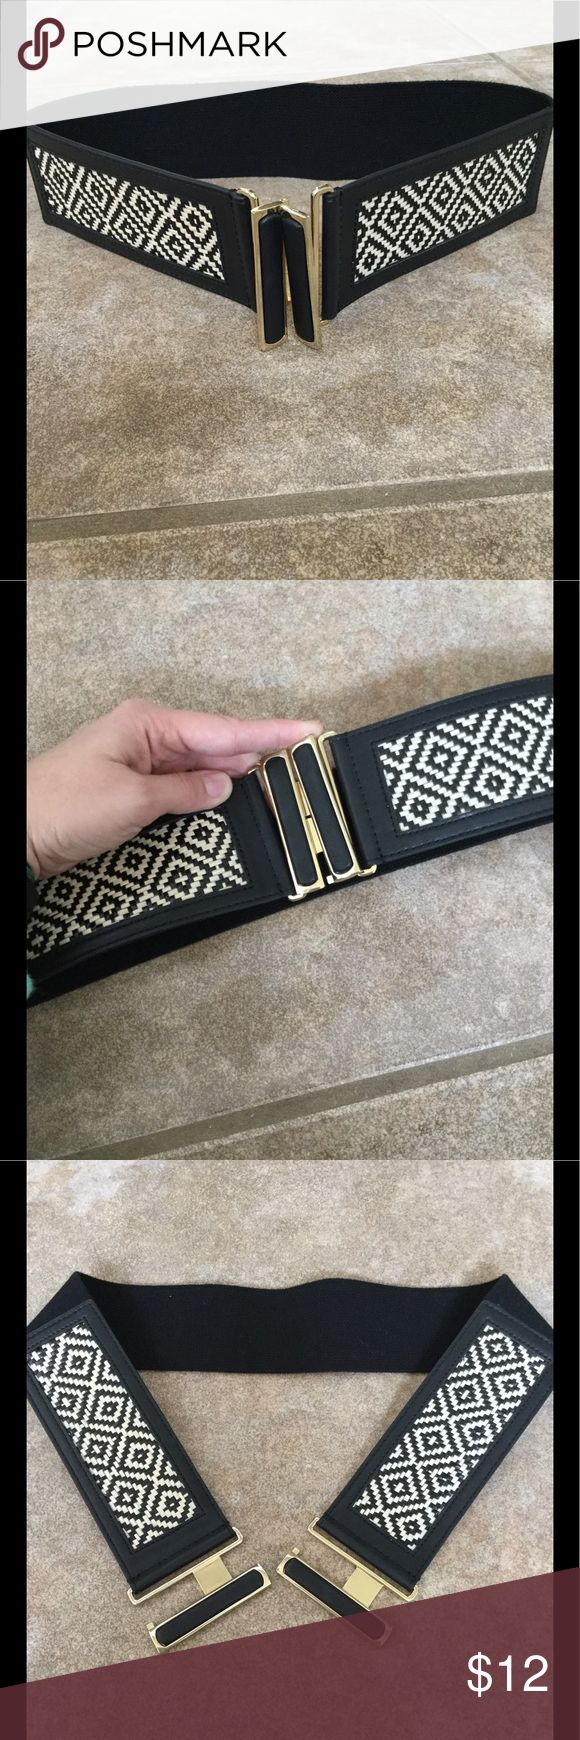 🌟 NWOT The Limited Black & White Stretch Belt NWOT black & white woven patterned stretch belt with faux leather trim and a gold hook closure. Perfect piece to add a little something extra for a plain dress or top. Meant to be worn under bust. The Limited Accessories Belts